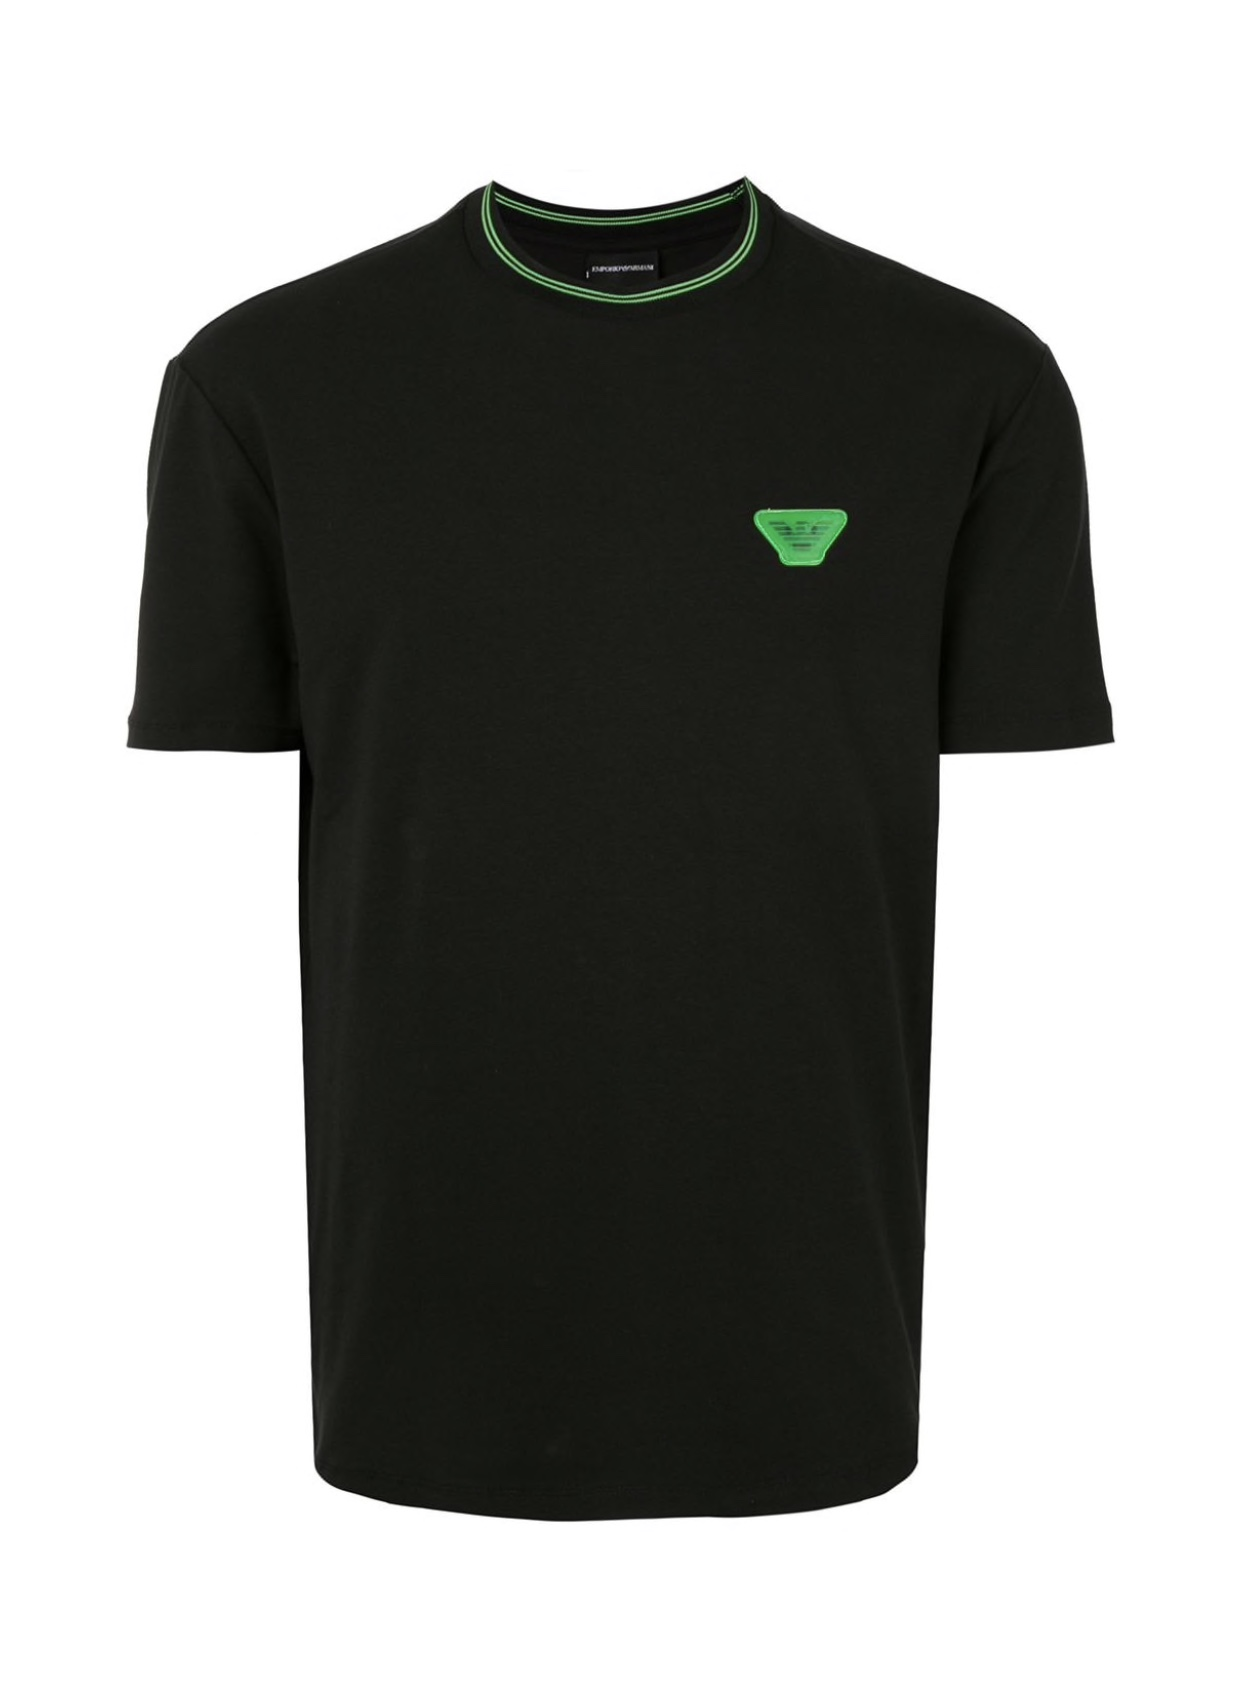 Black green hologram t-shirt